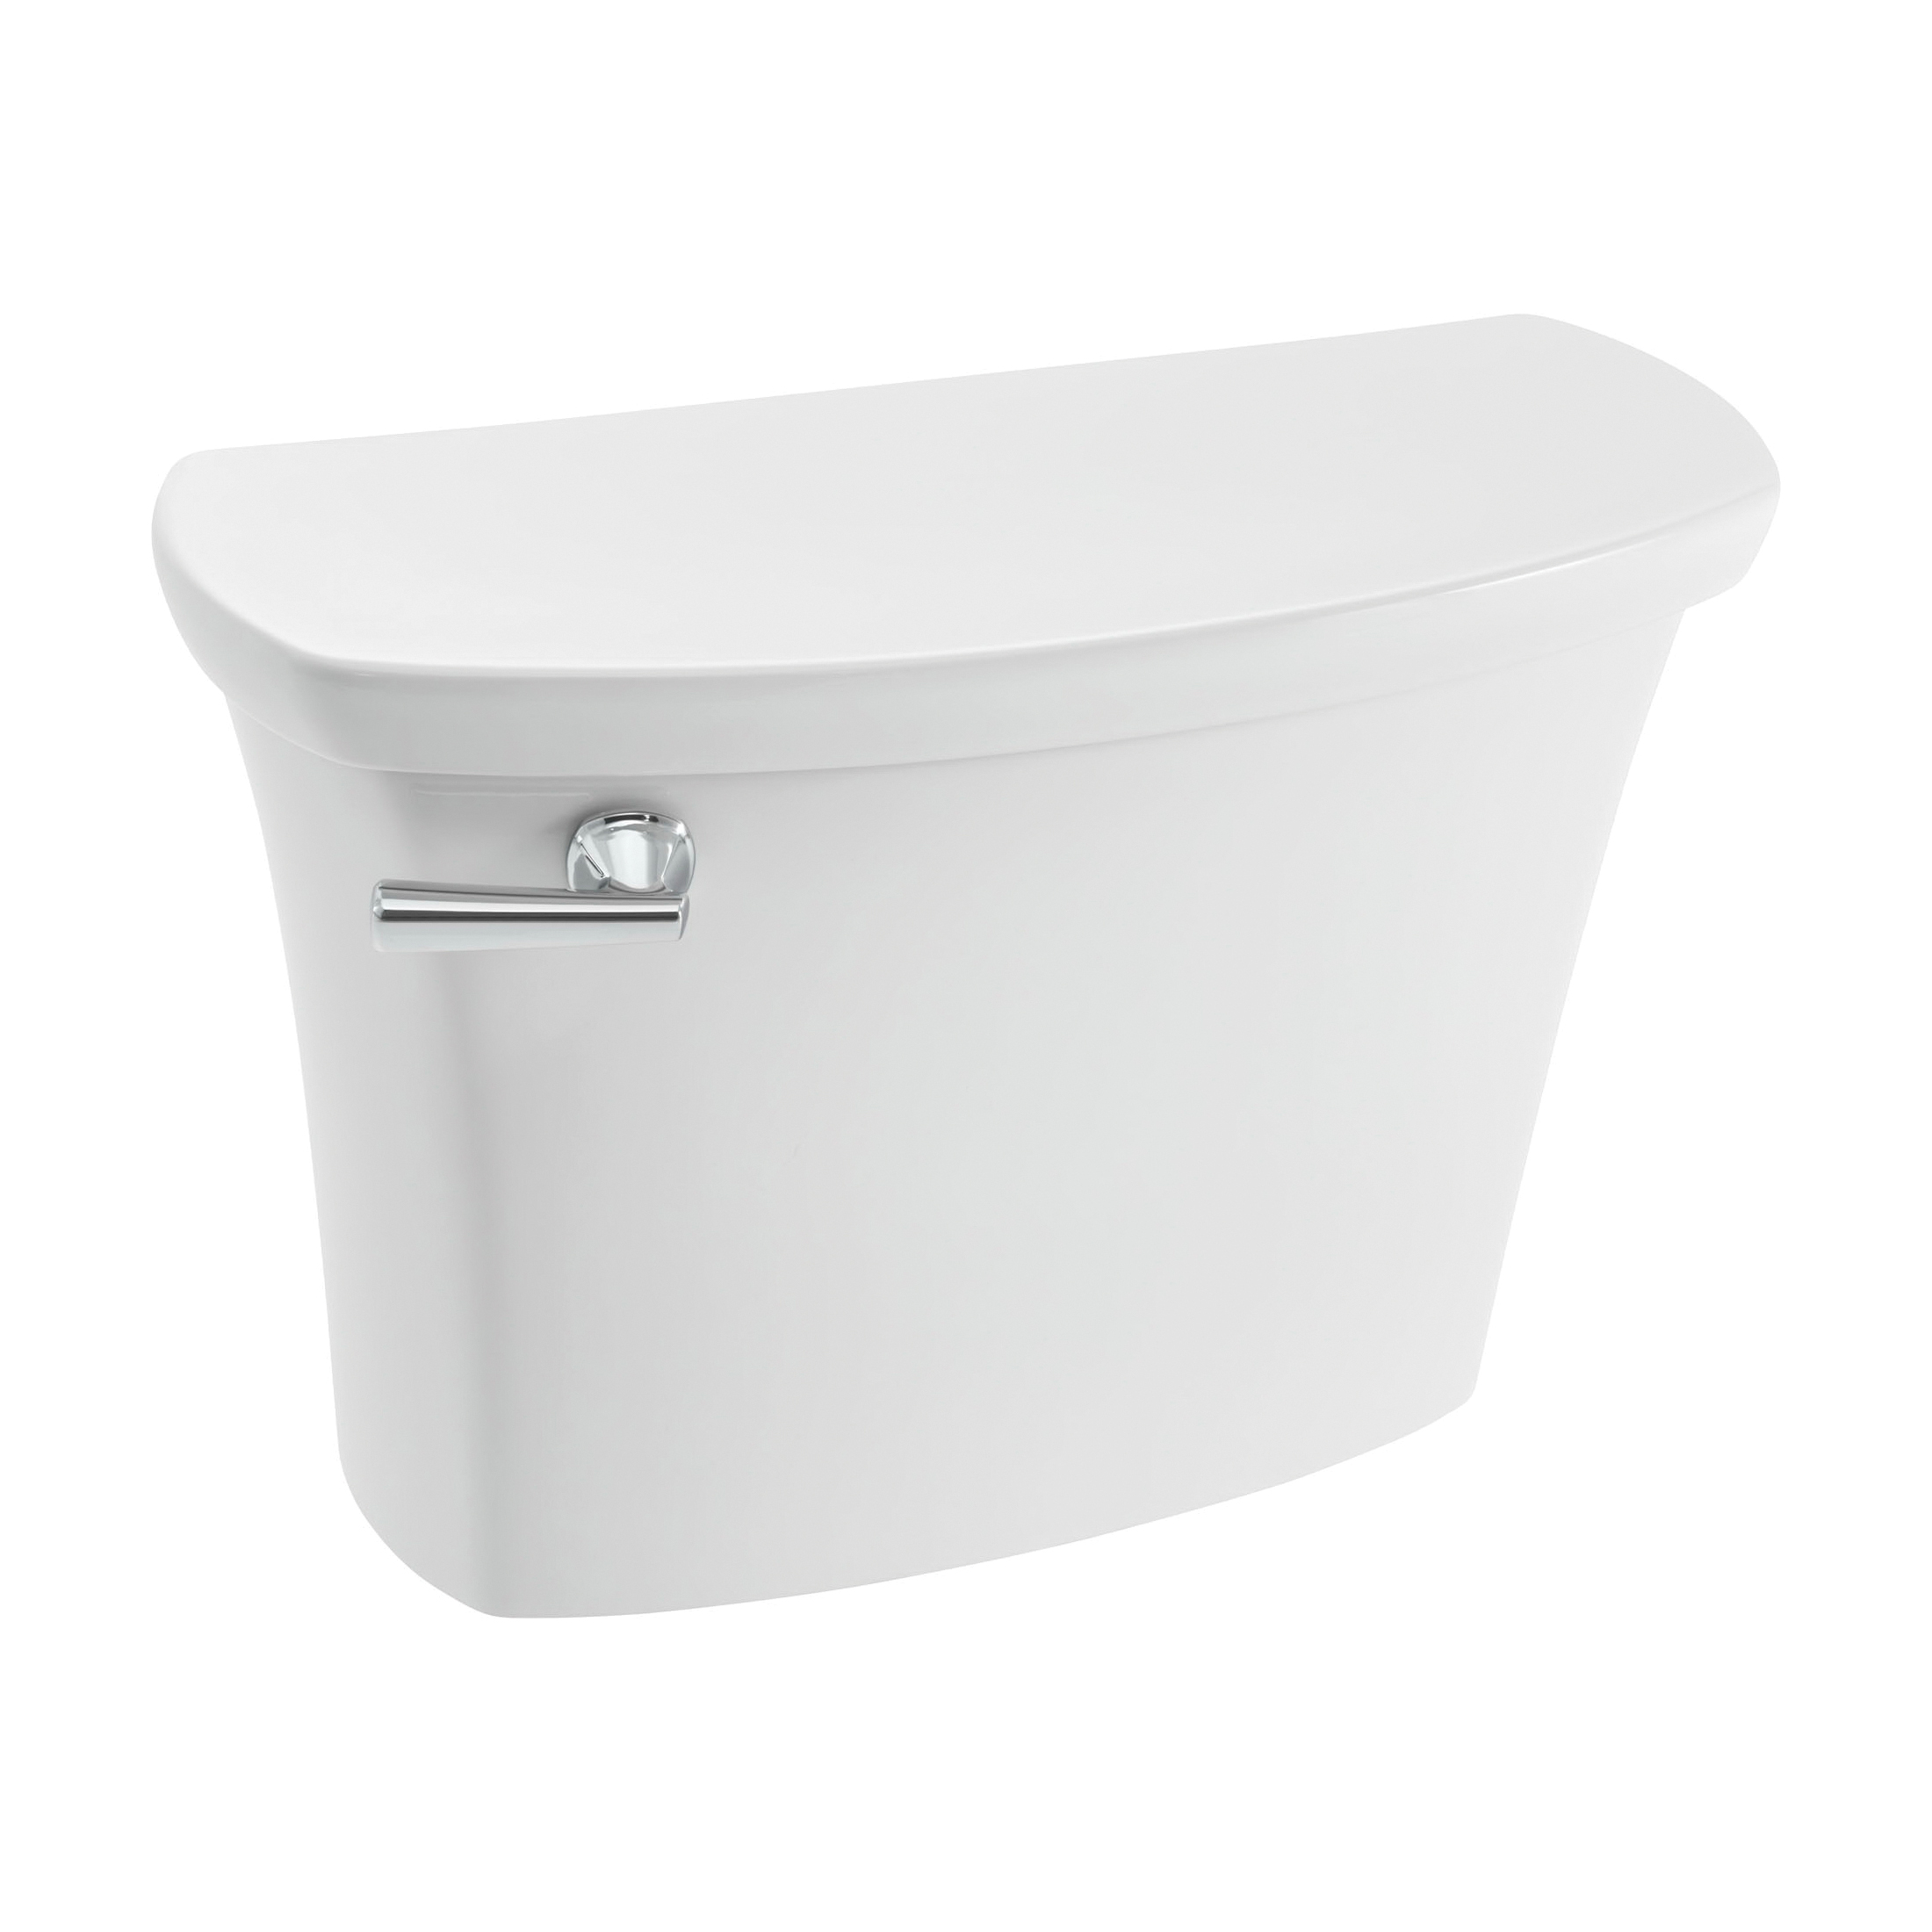 Products American Standard 3060 509 Clw Value Bathtub